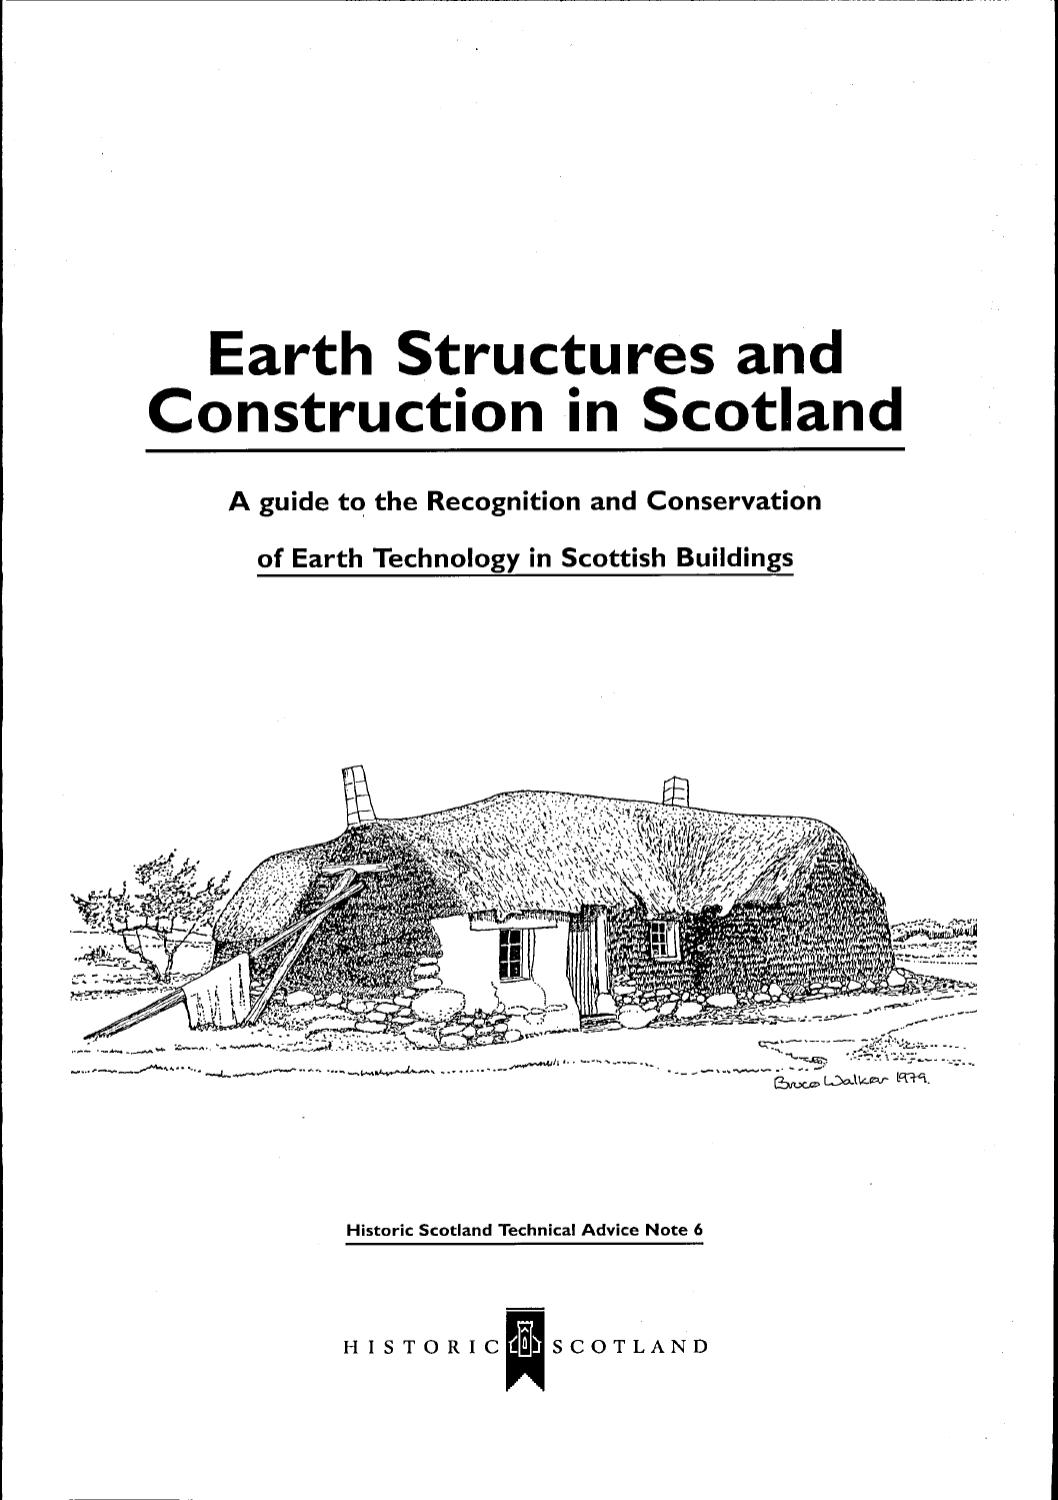 TAN 06- EARTH STRUCTURES AND CONSTRUCTION IN SCOTLAND by